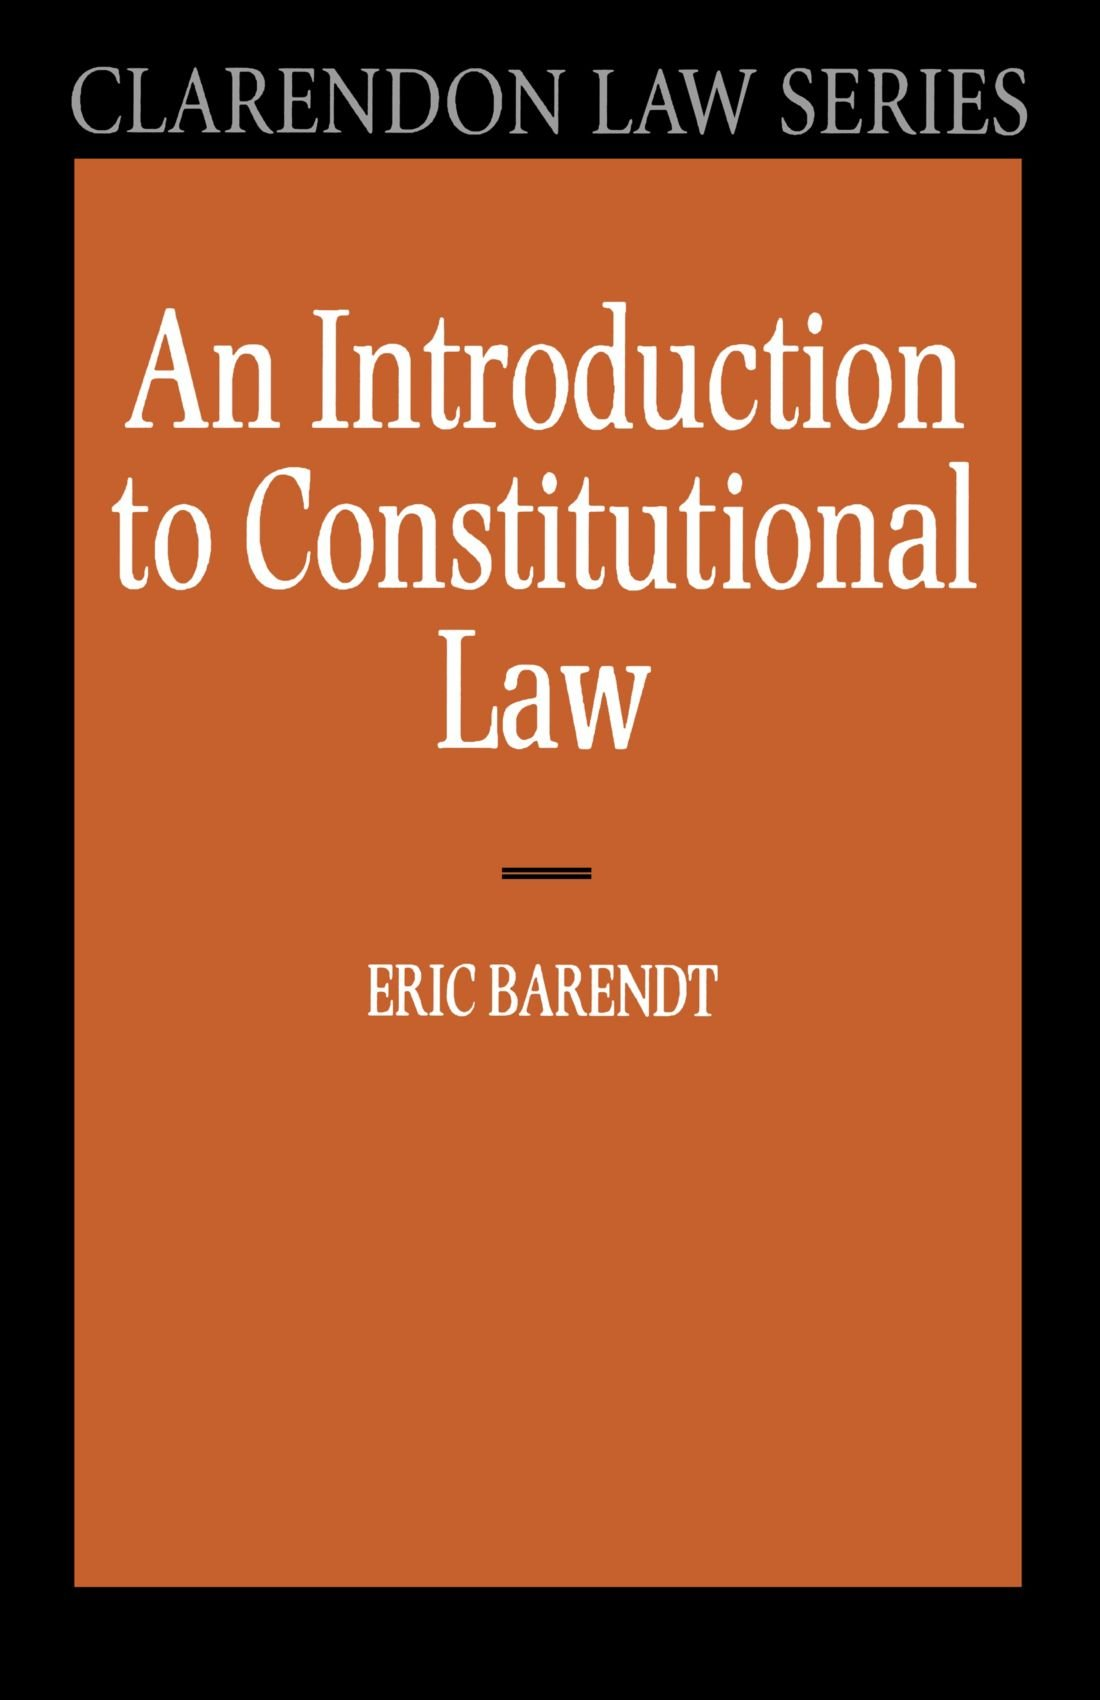 Buy An Introduction to Constitutional Law (Clarendon Law Series) Book  Online at Low Prices in India | An Introduction to Constitutional Law (Clarendon  Law ...